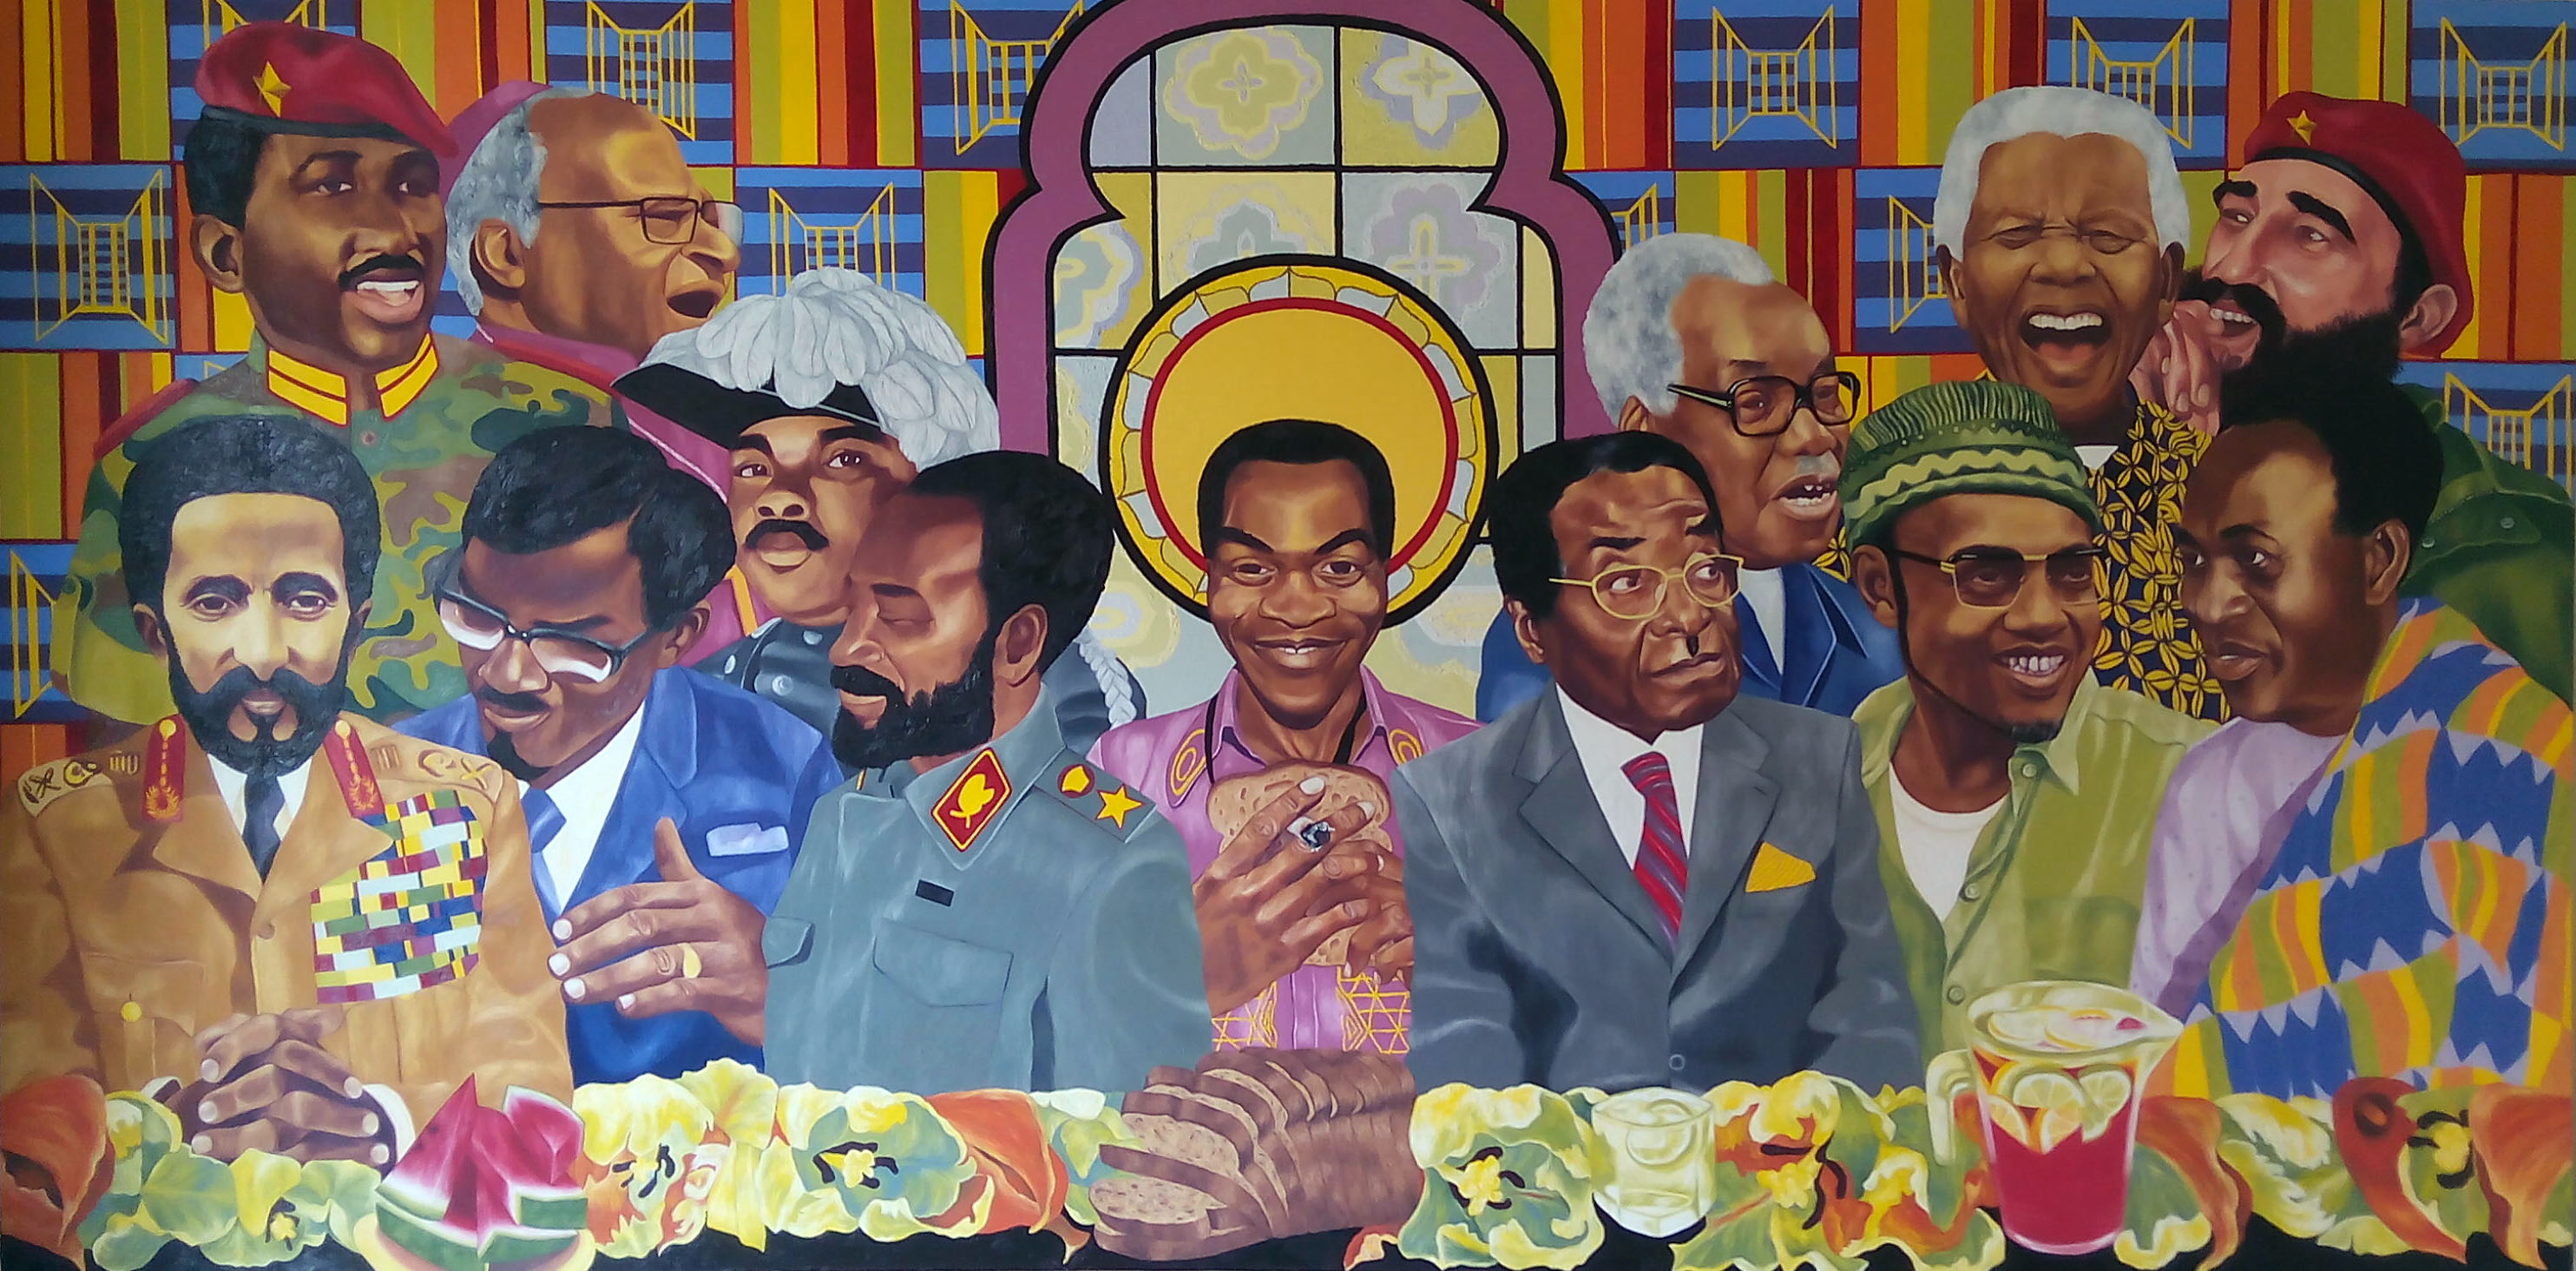 The Last Supper - by Paul Ndema